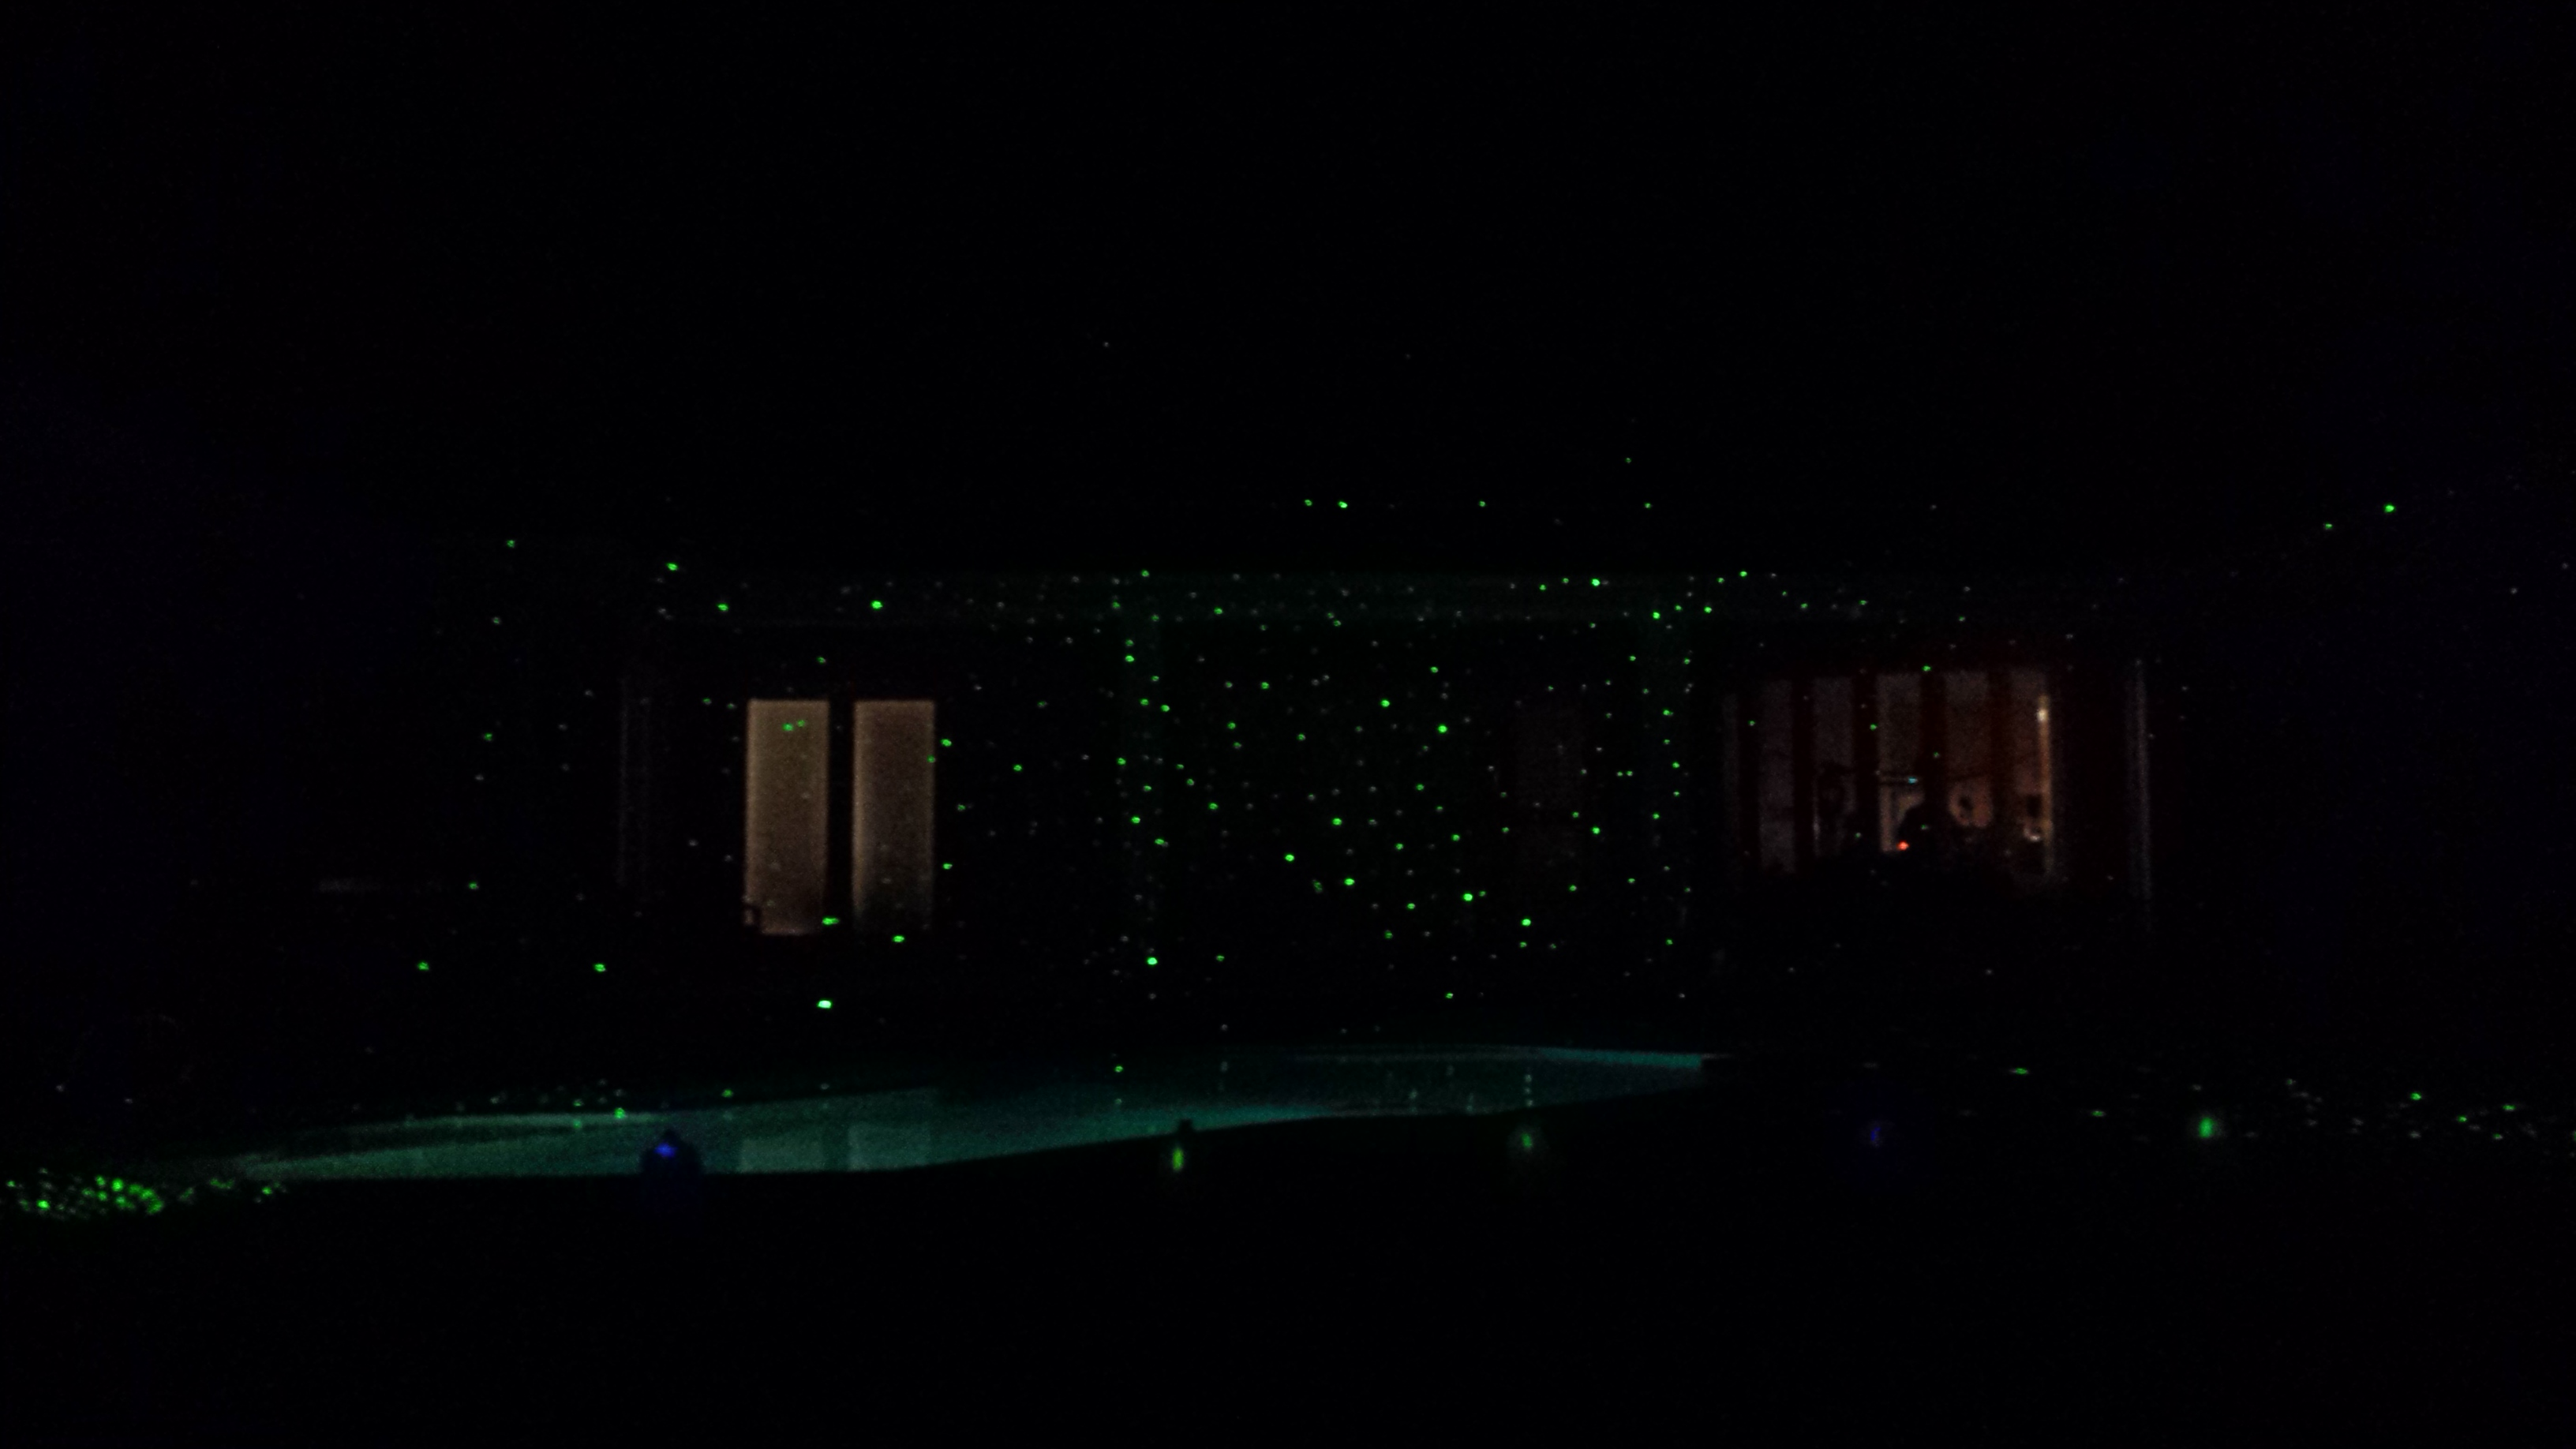 Our pool was lit up with an awesome light show, made possible by a gadget called Star Shower Laser Light.